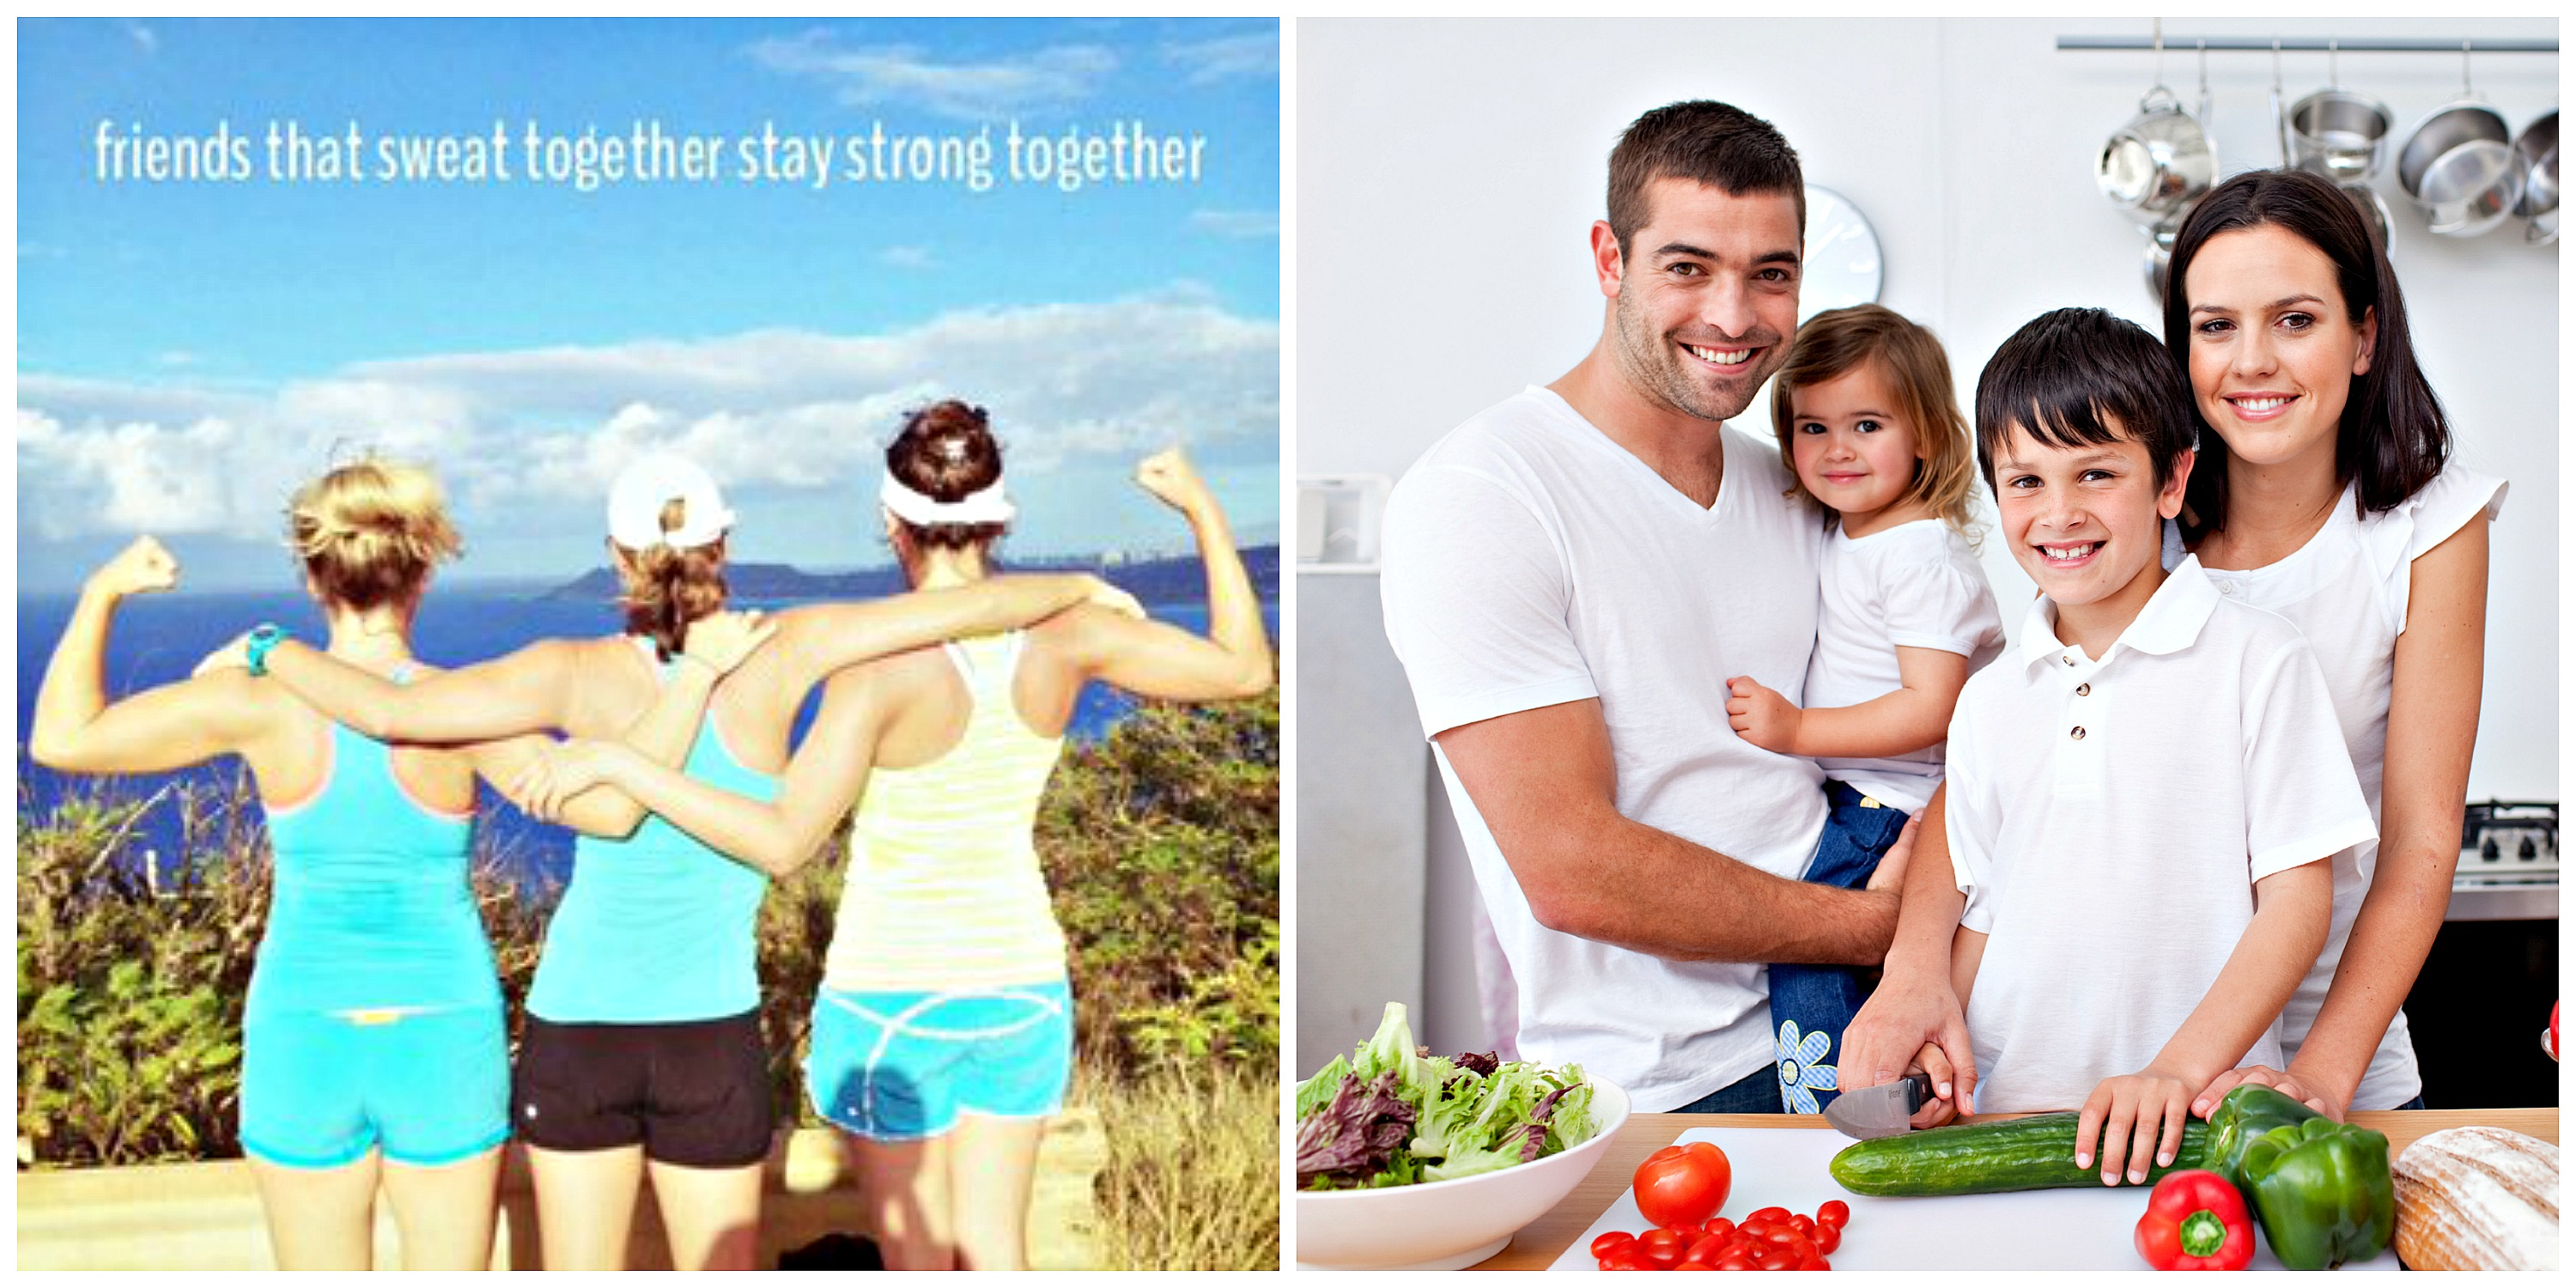 Workout Buddies and Family Cooking